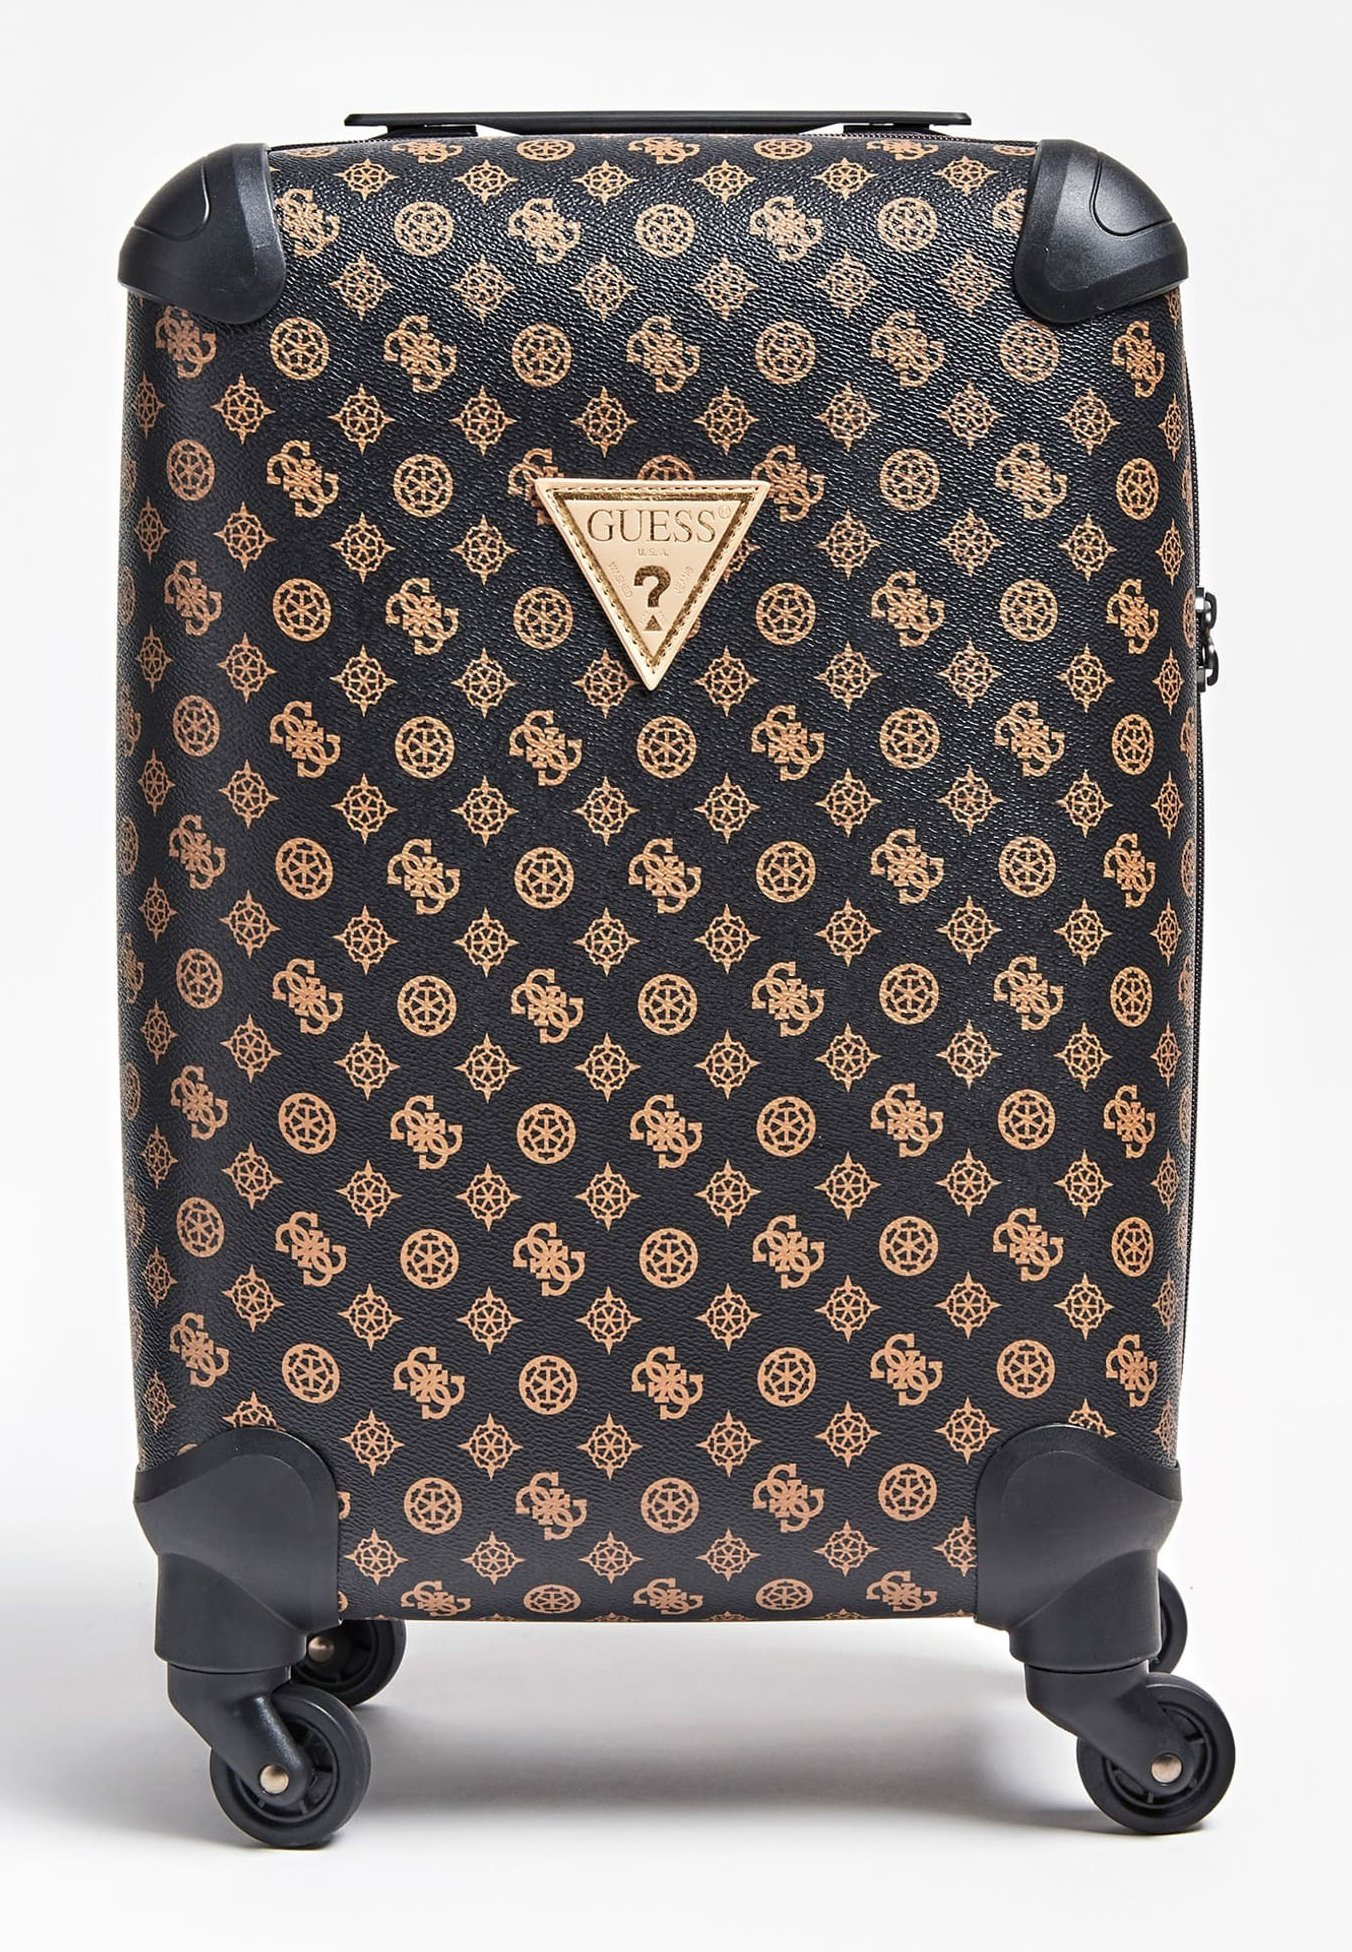 Femme GUESS TROLLEY WILDER LOGO PEONY - Valise à roulettes